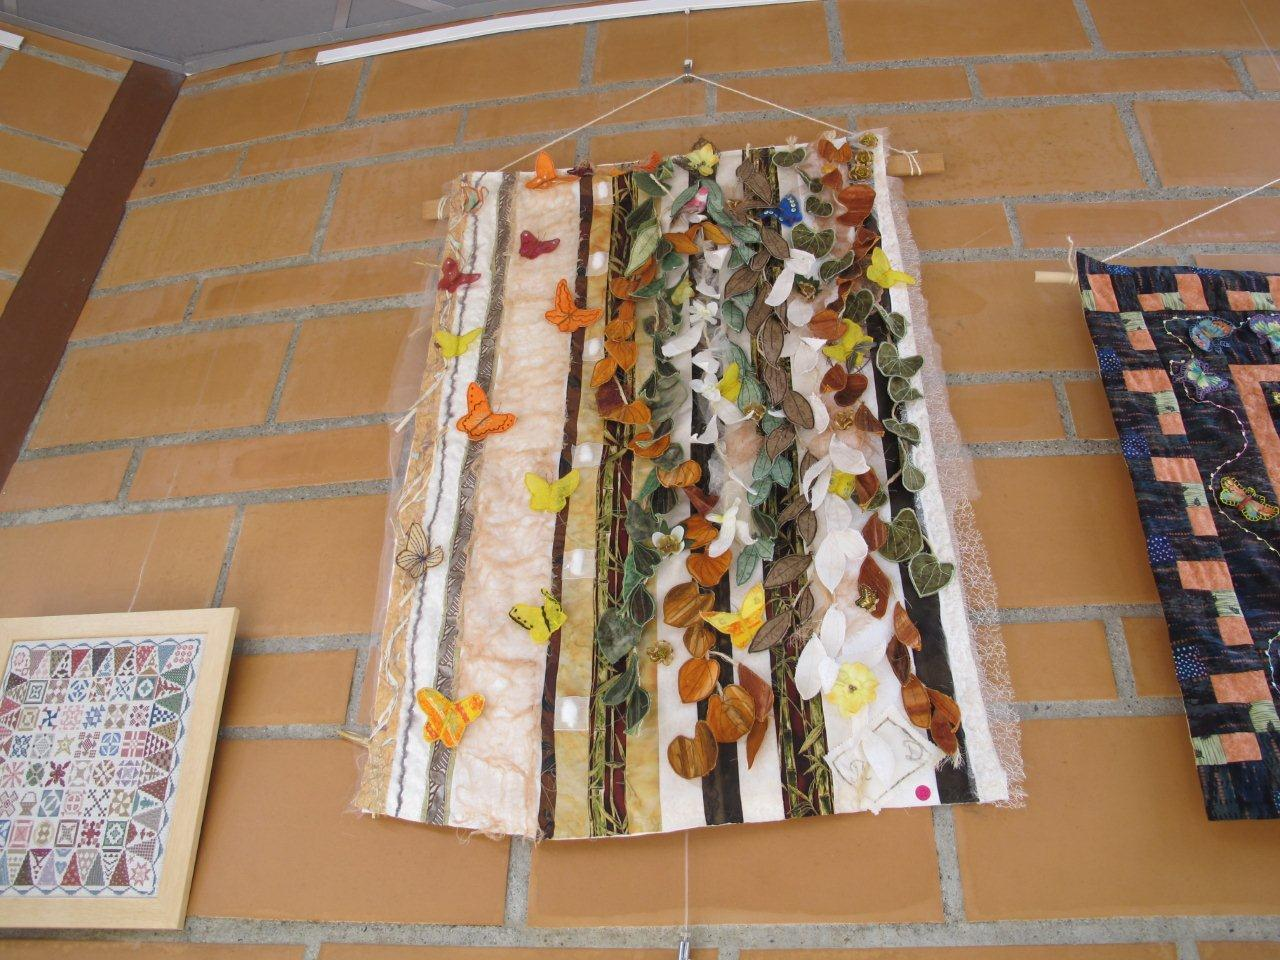 Expo patch 7